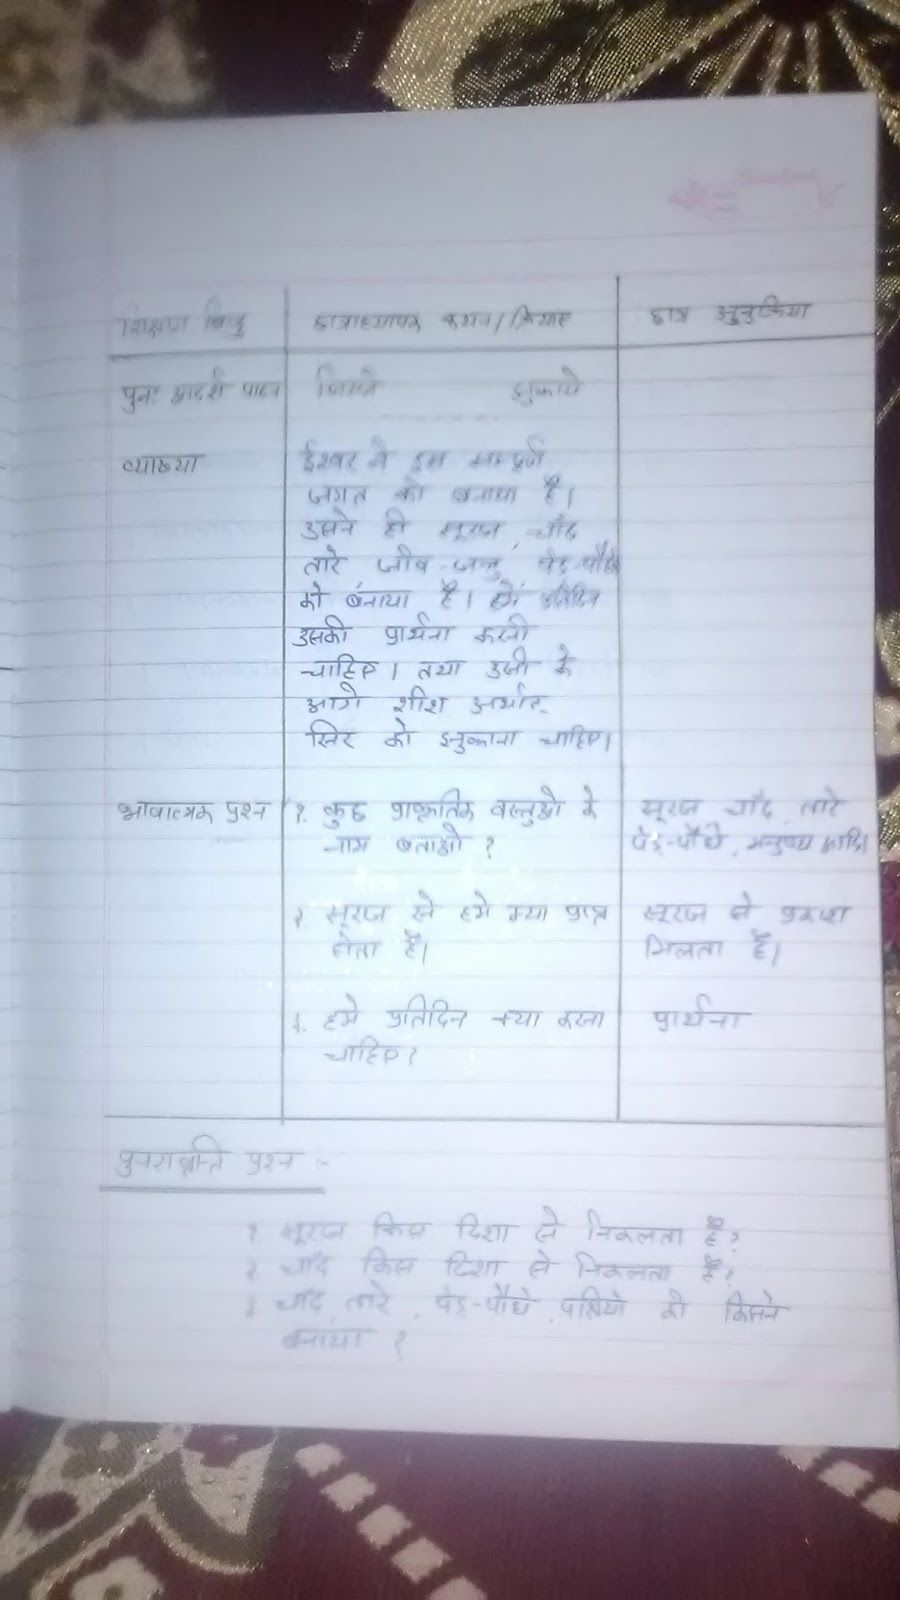 Pin by Deependra singh on Lesson plan | Lesson plans, Lesson